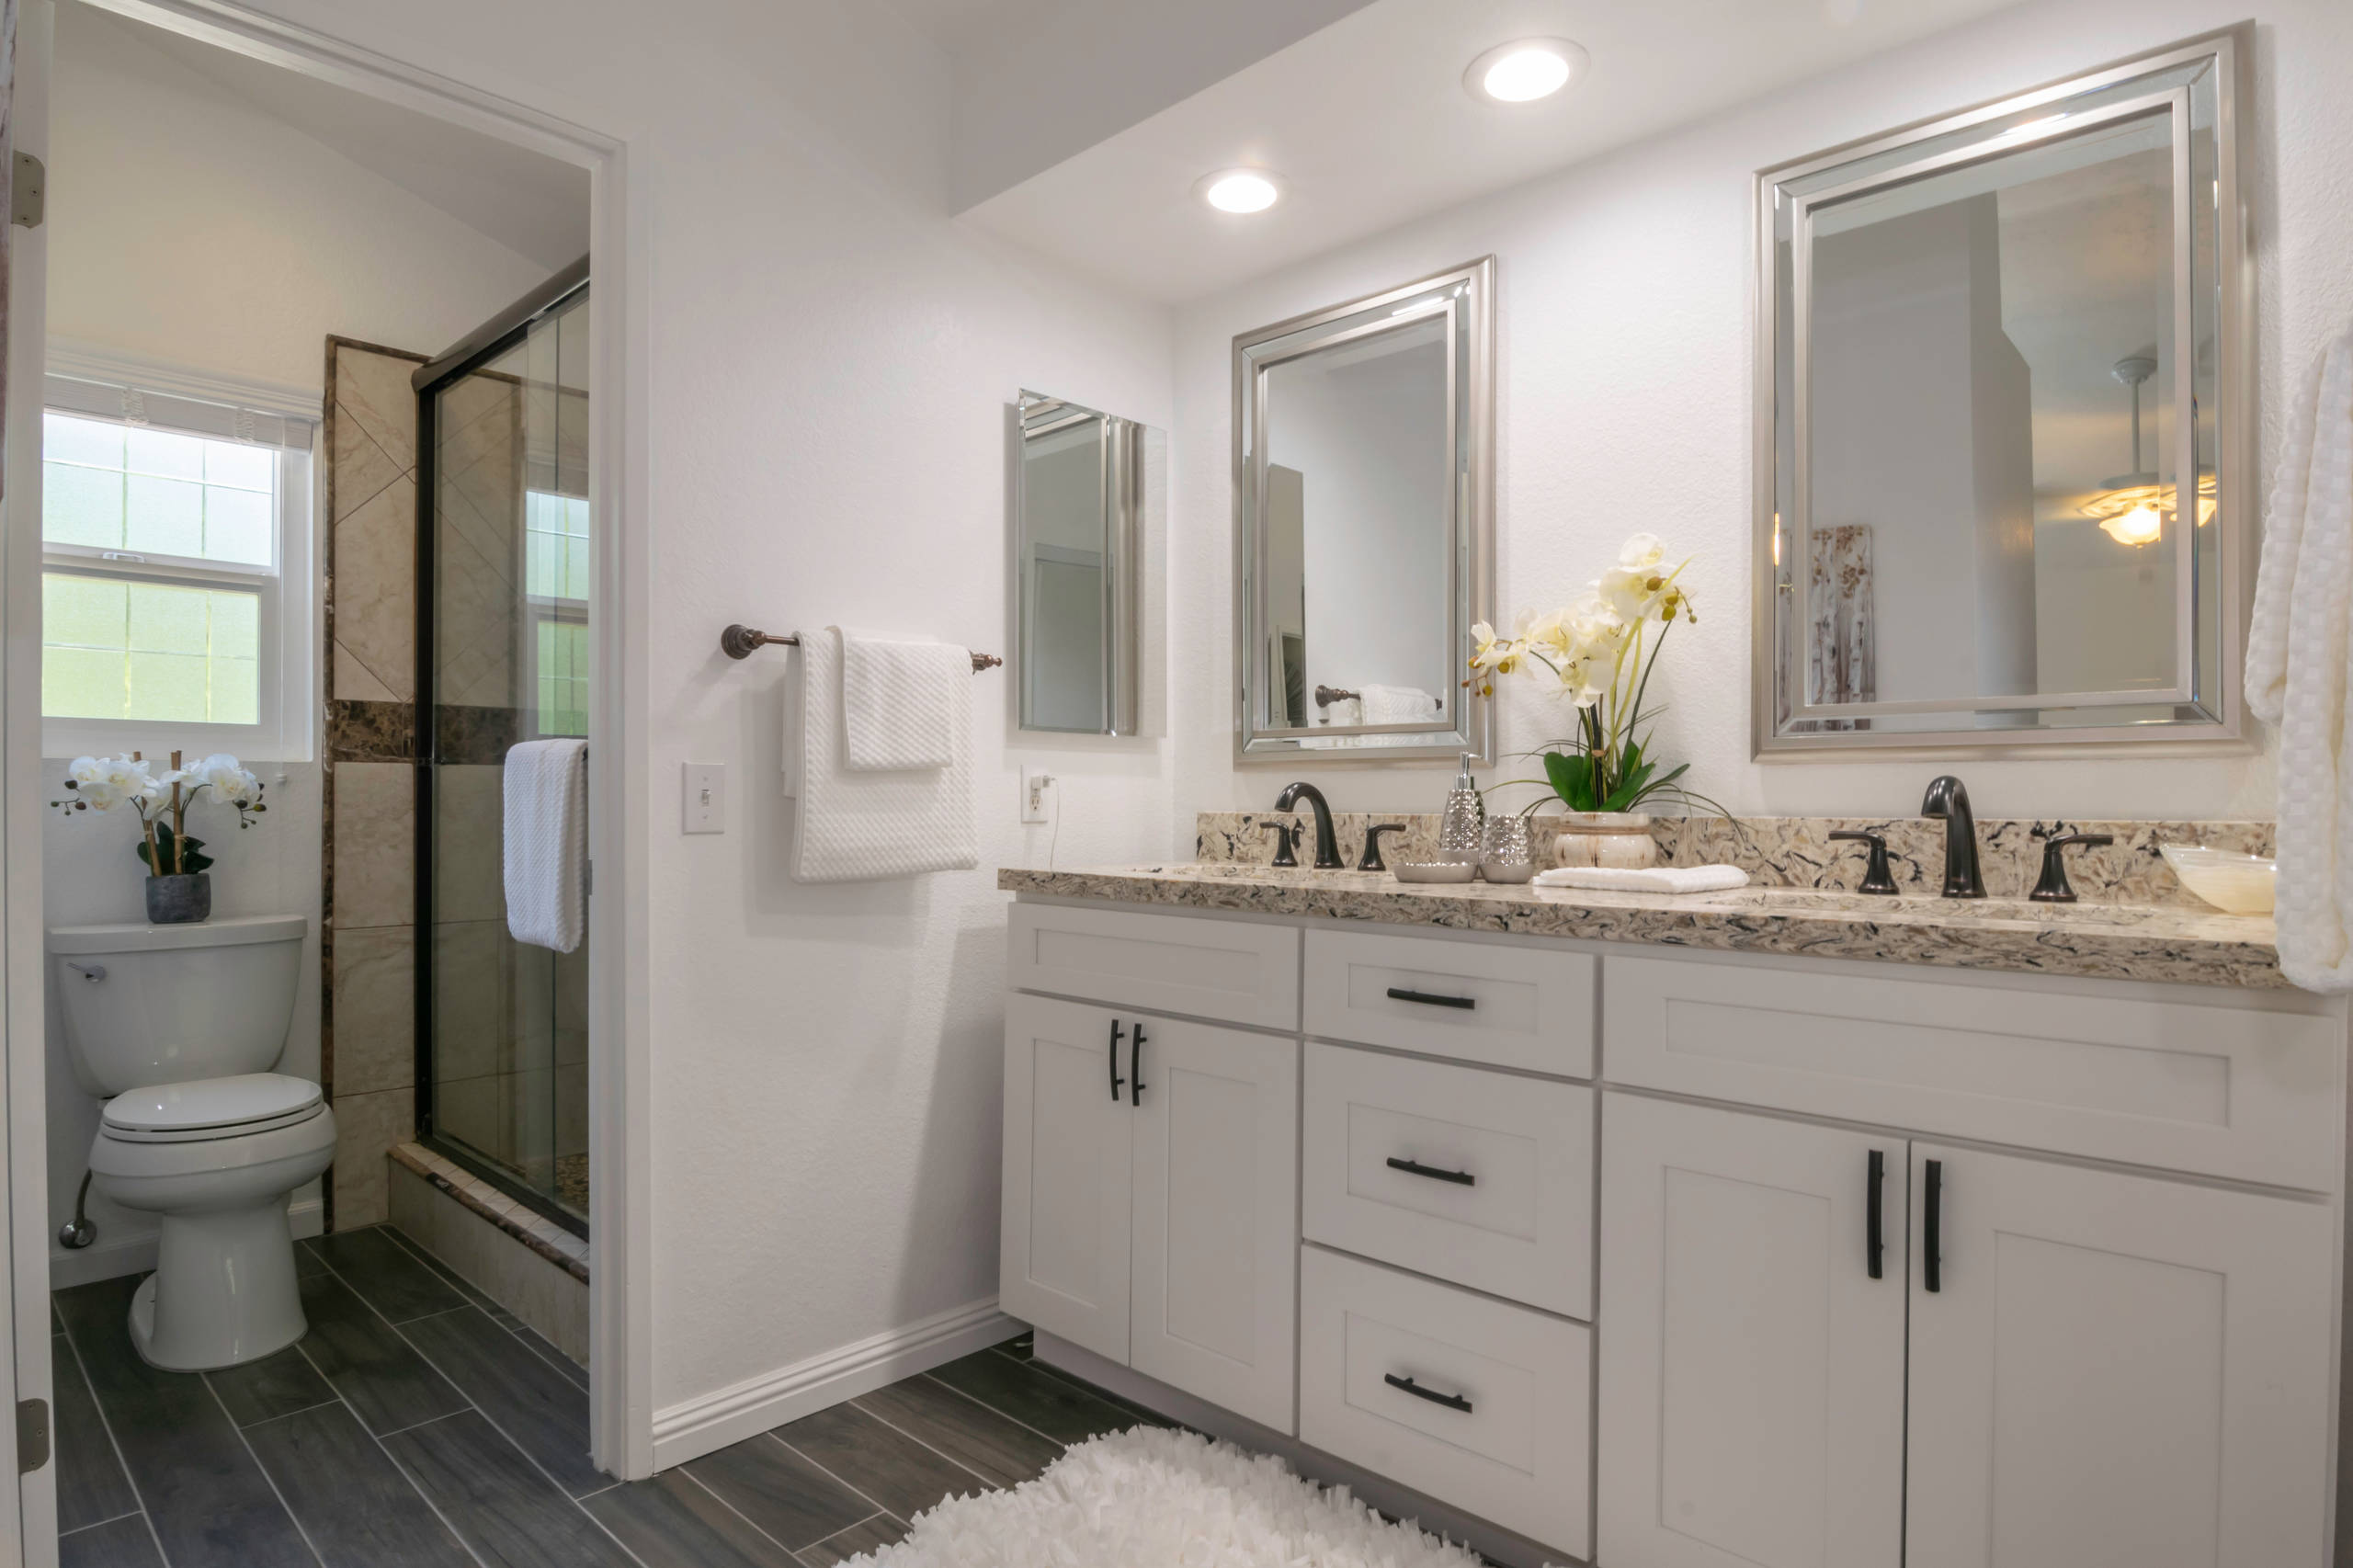 Vacant Home Staging in Corona